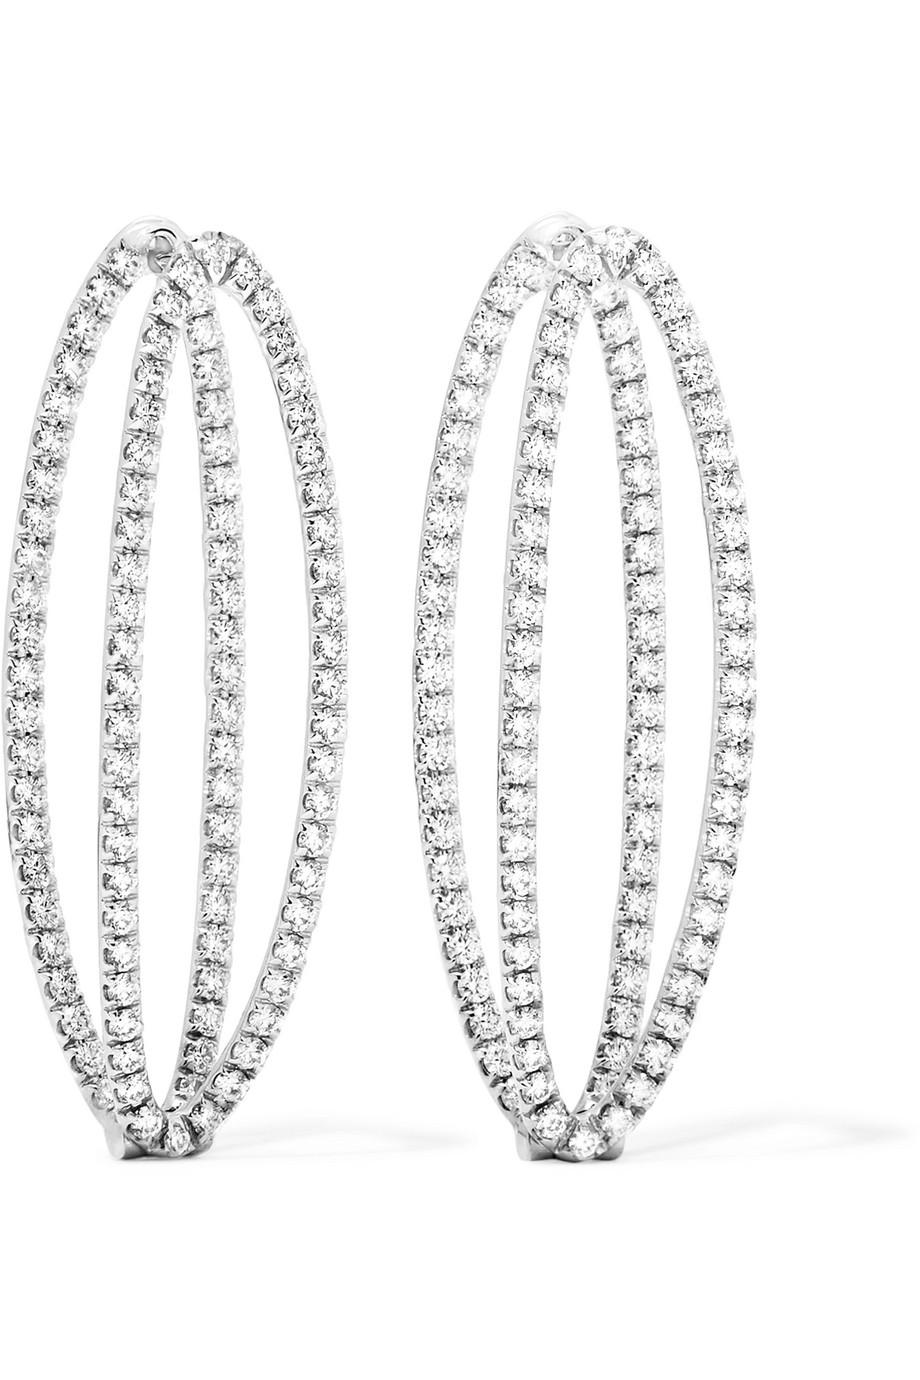 Melissa Kaye Mila 18-karat White Gold Diamond Earrings BepmoUu